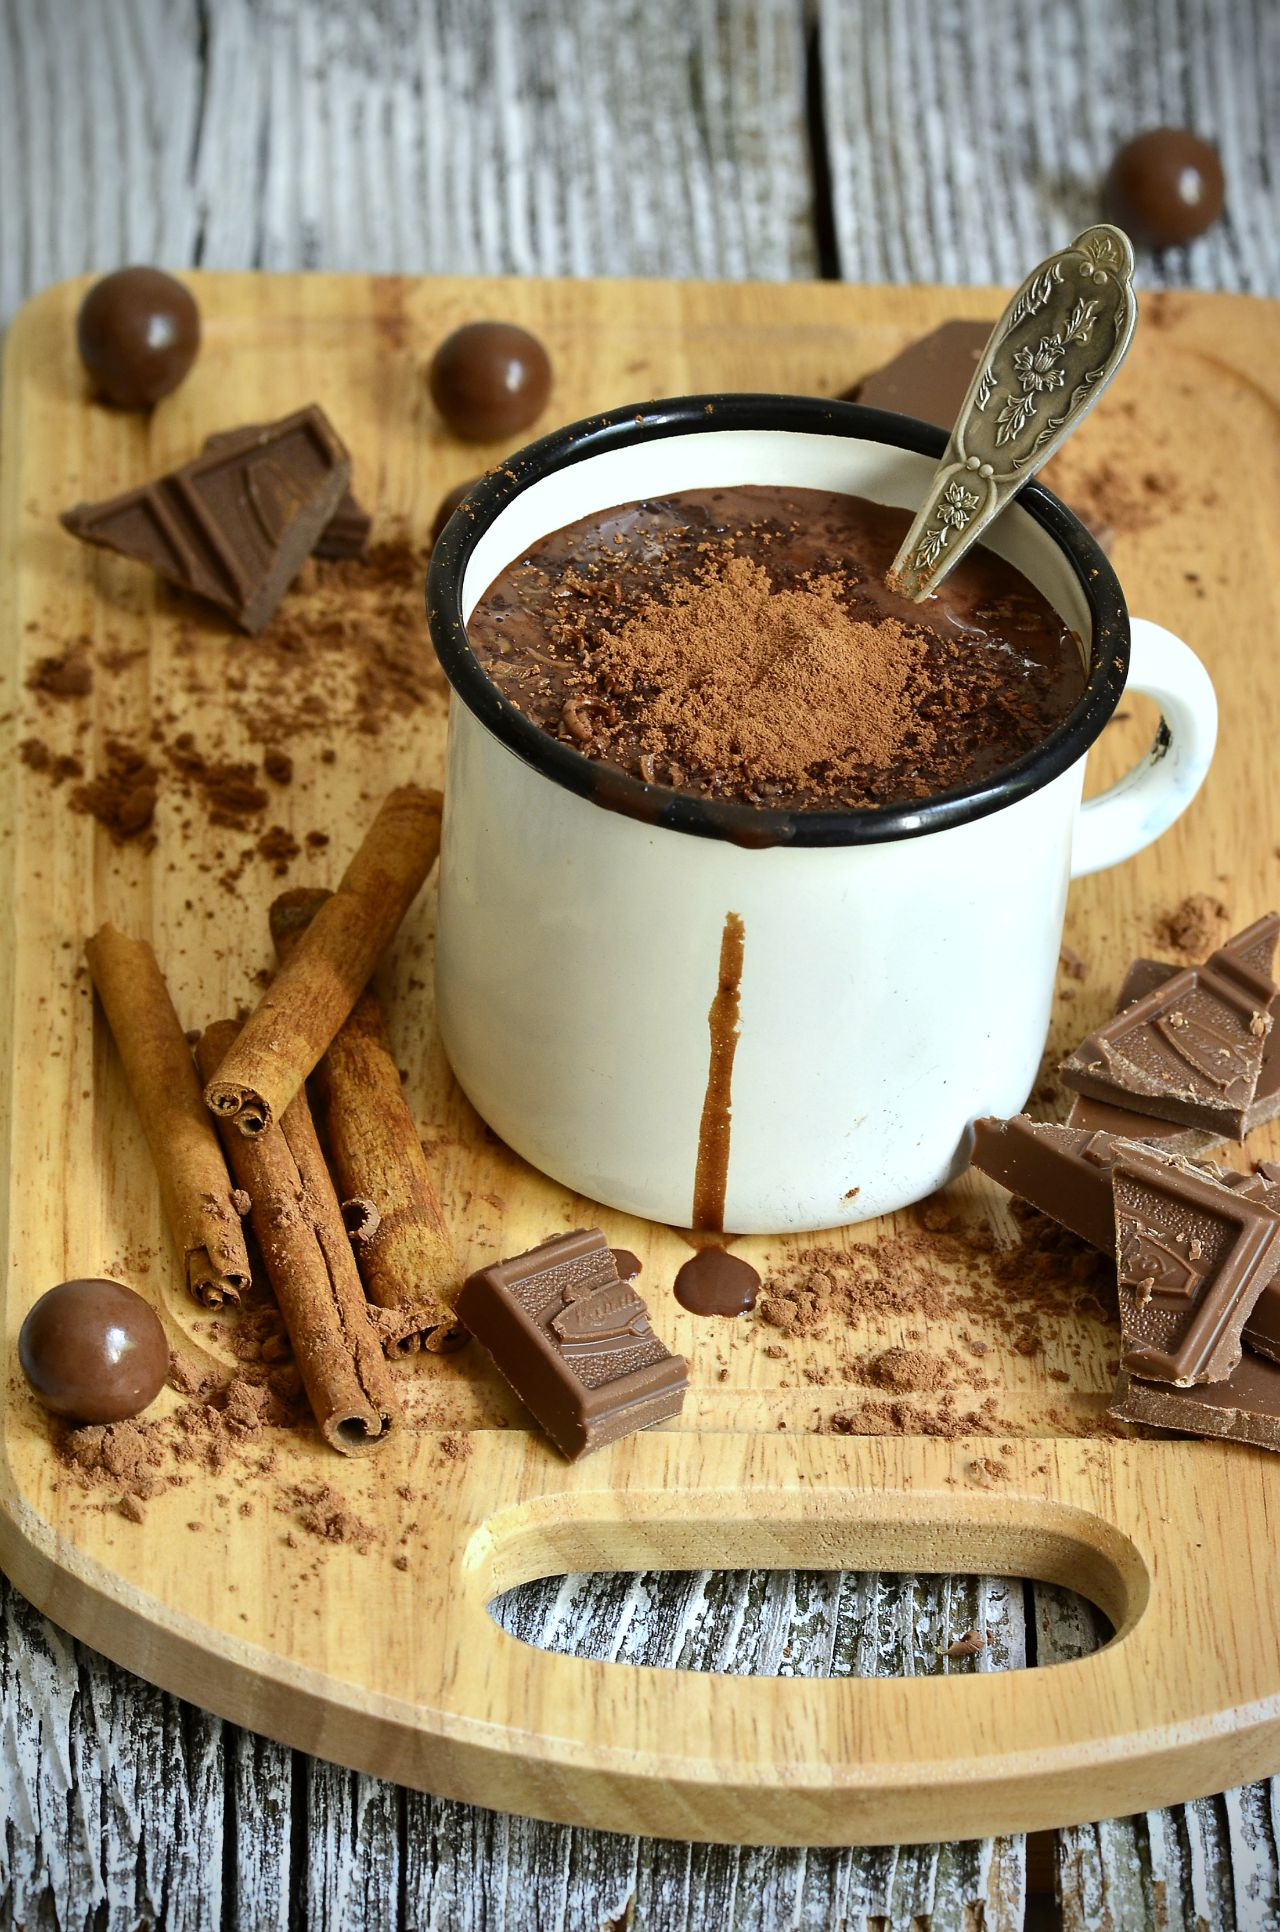 Hot chocolate in an enamel mug on the wooden board.